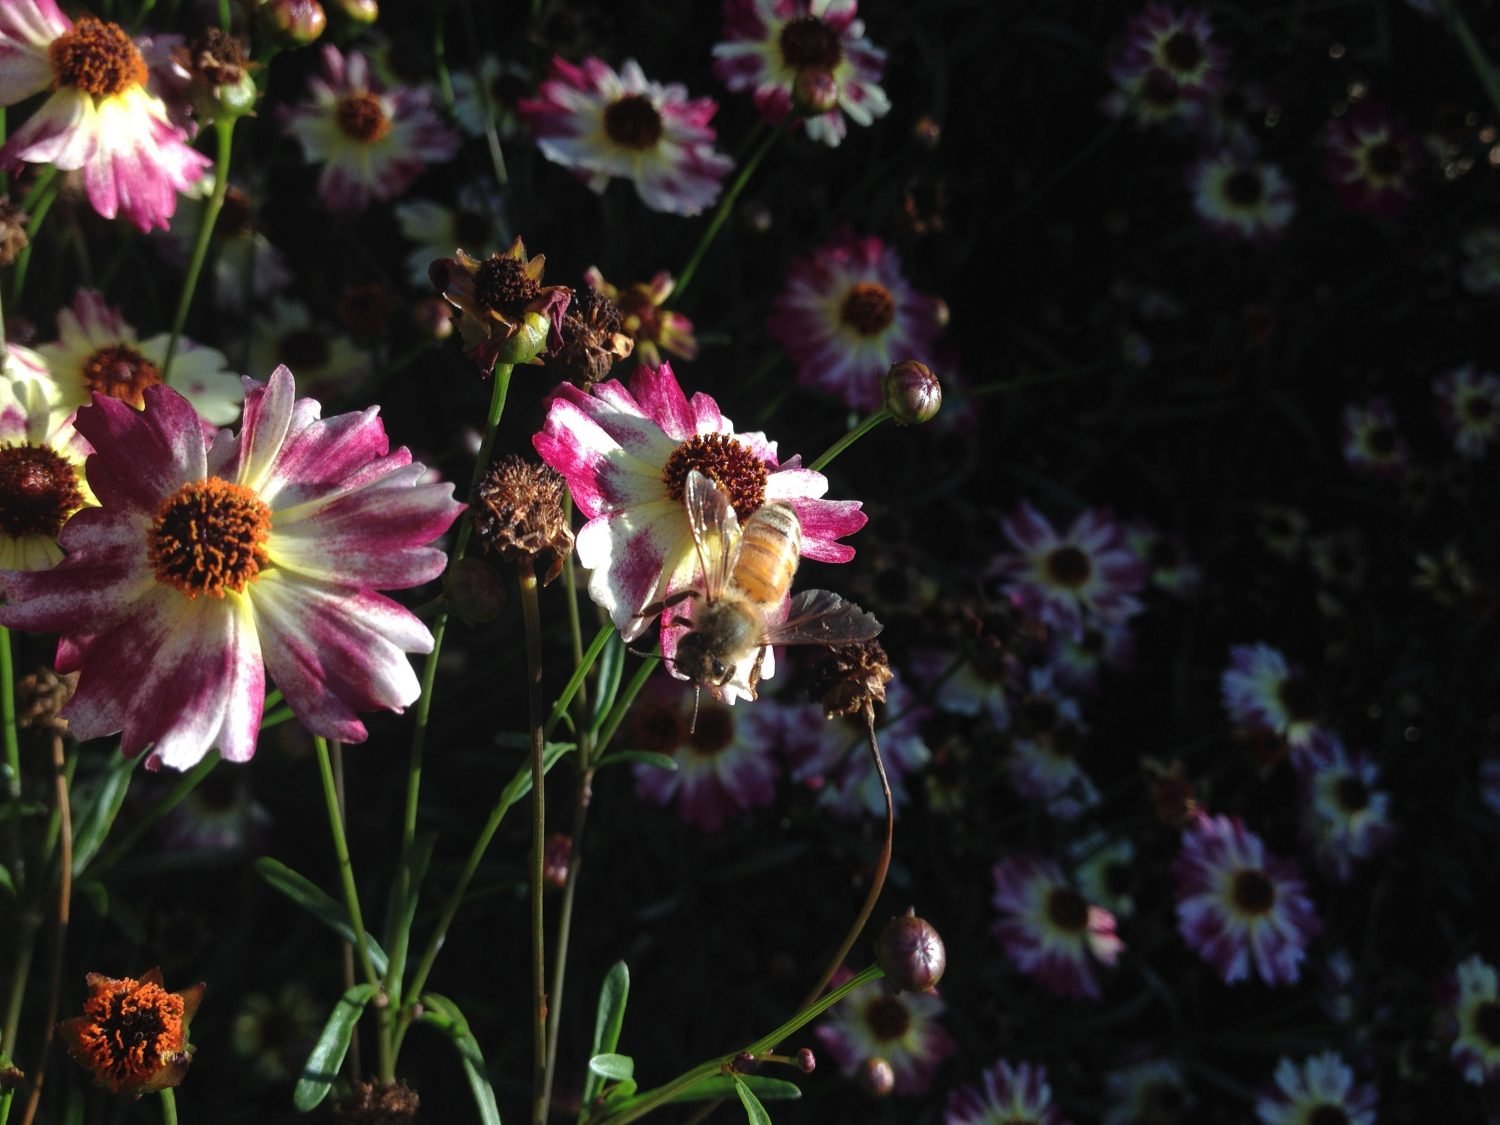 One Honeybee's Lesson on Compassion: A Reminder to Never Underestimate